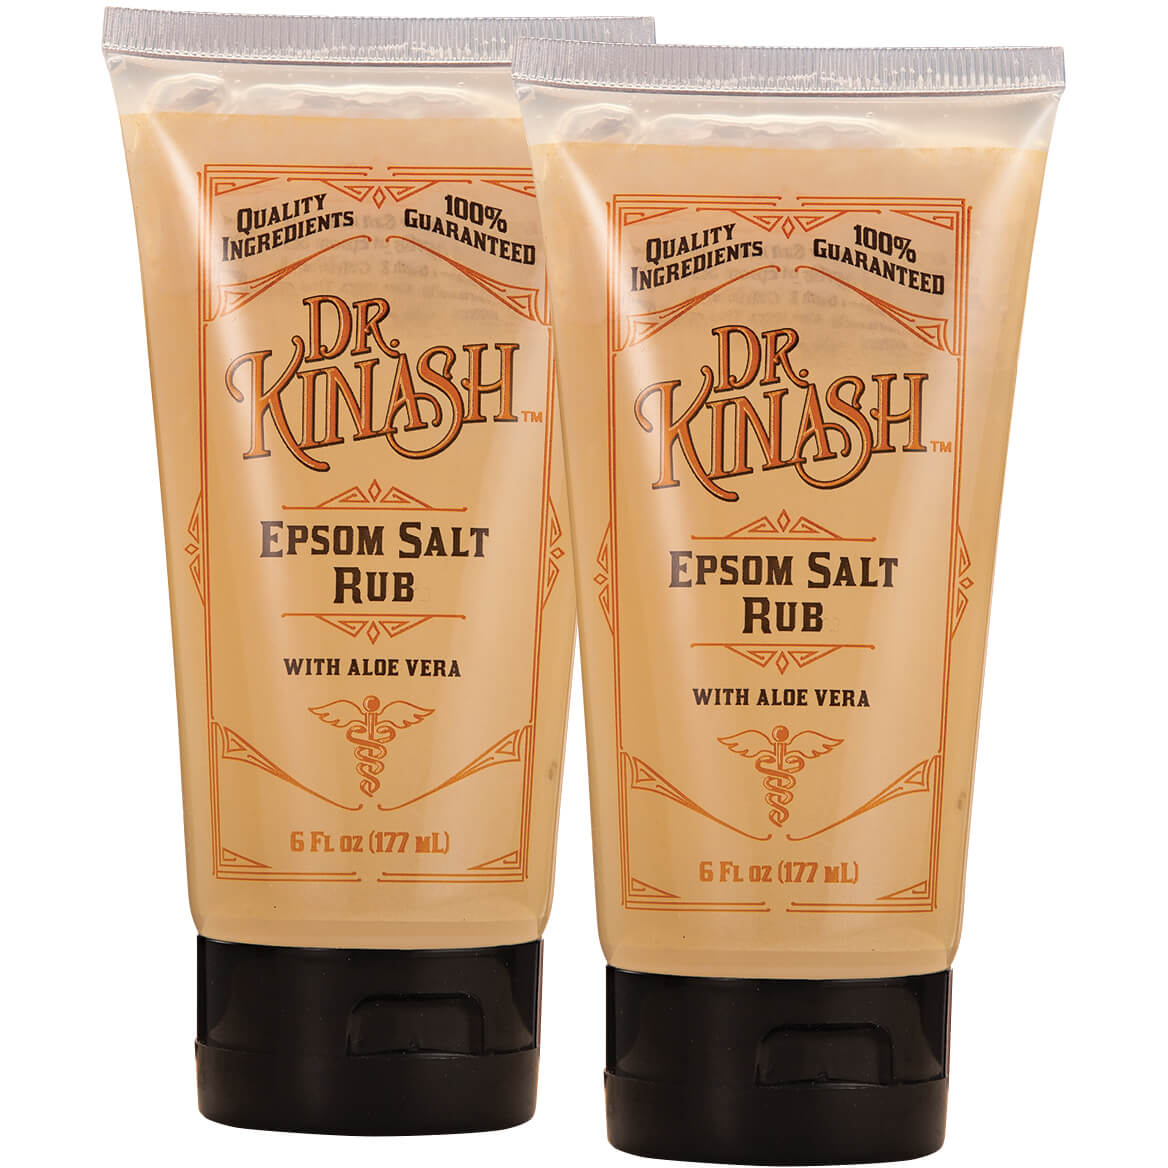 Dr. Kinash™ Epsom Salt Rub 6 oz., Set of 2-368909